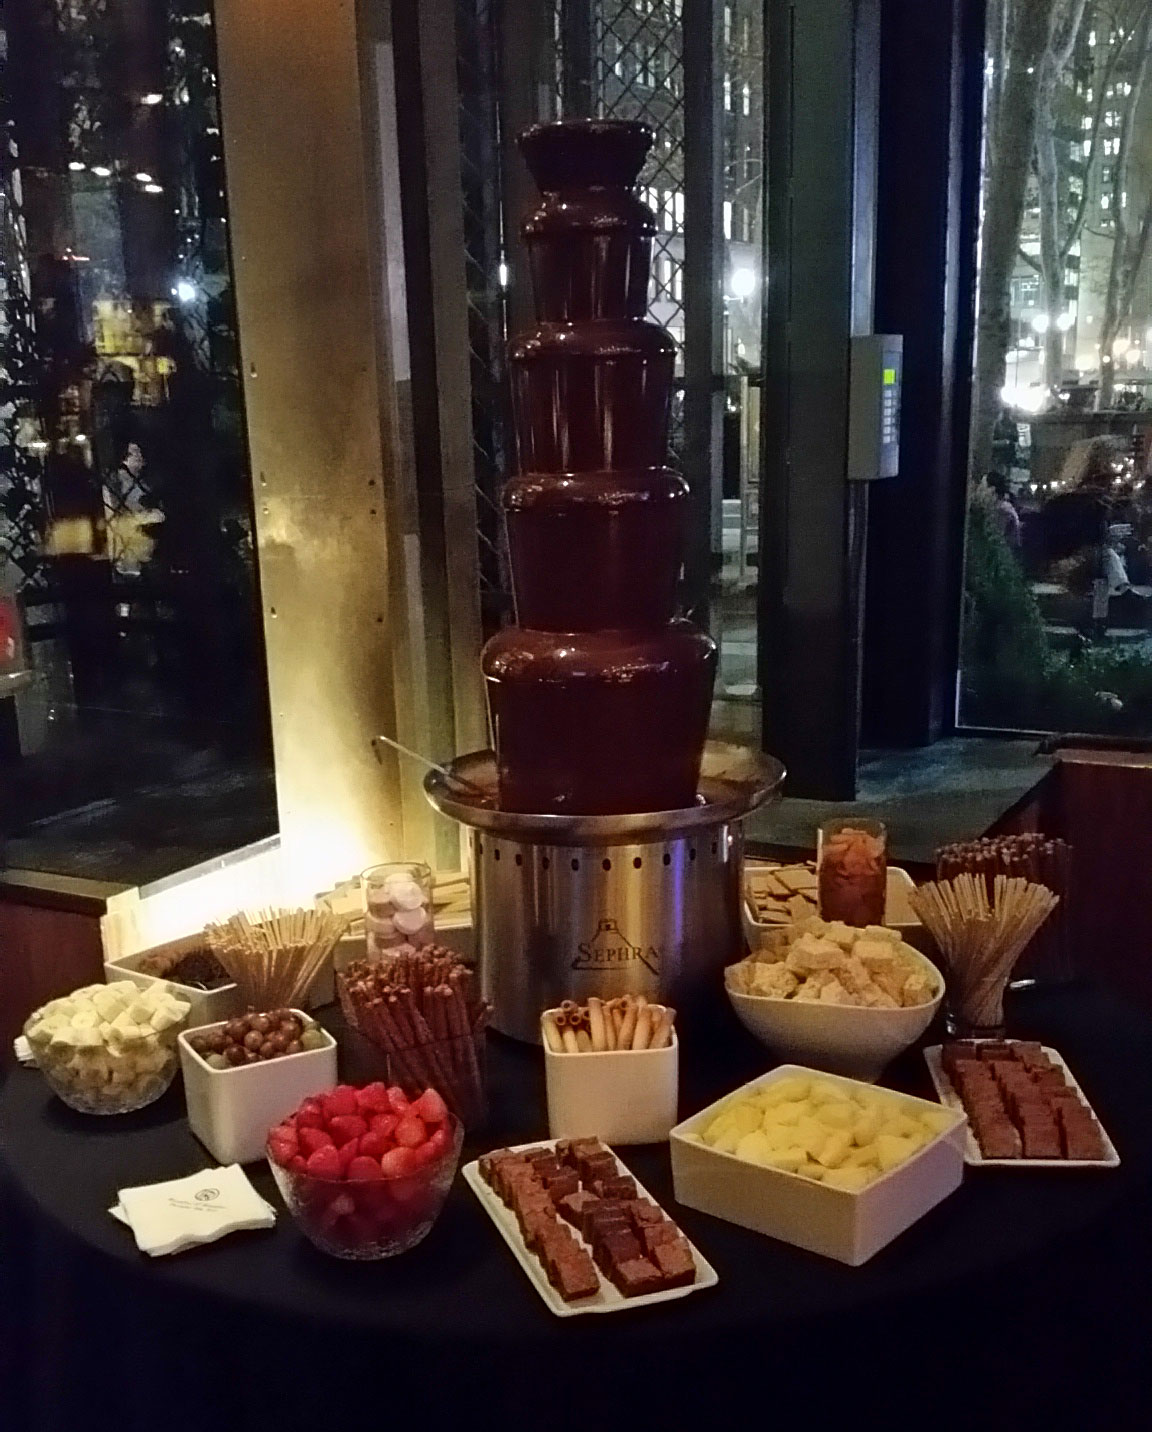 bryant-park-grill-chocolate-fountain